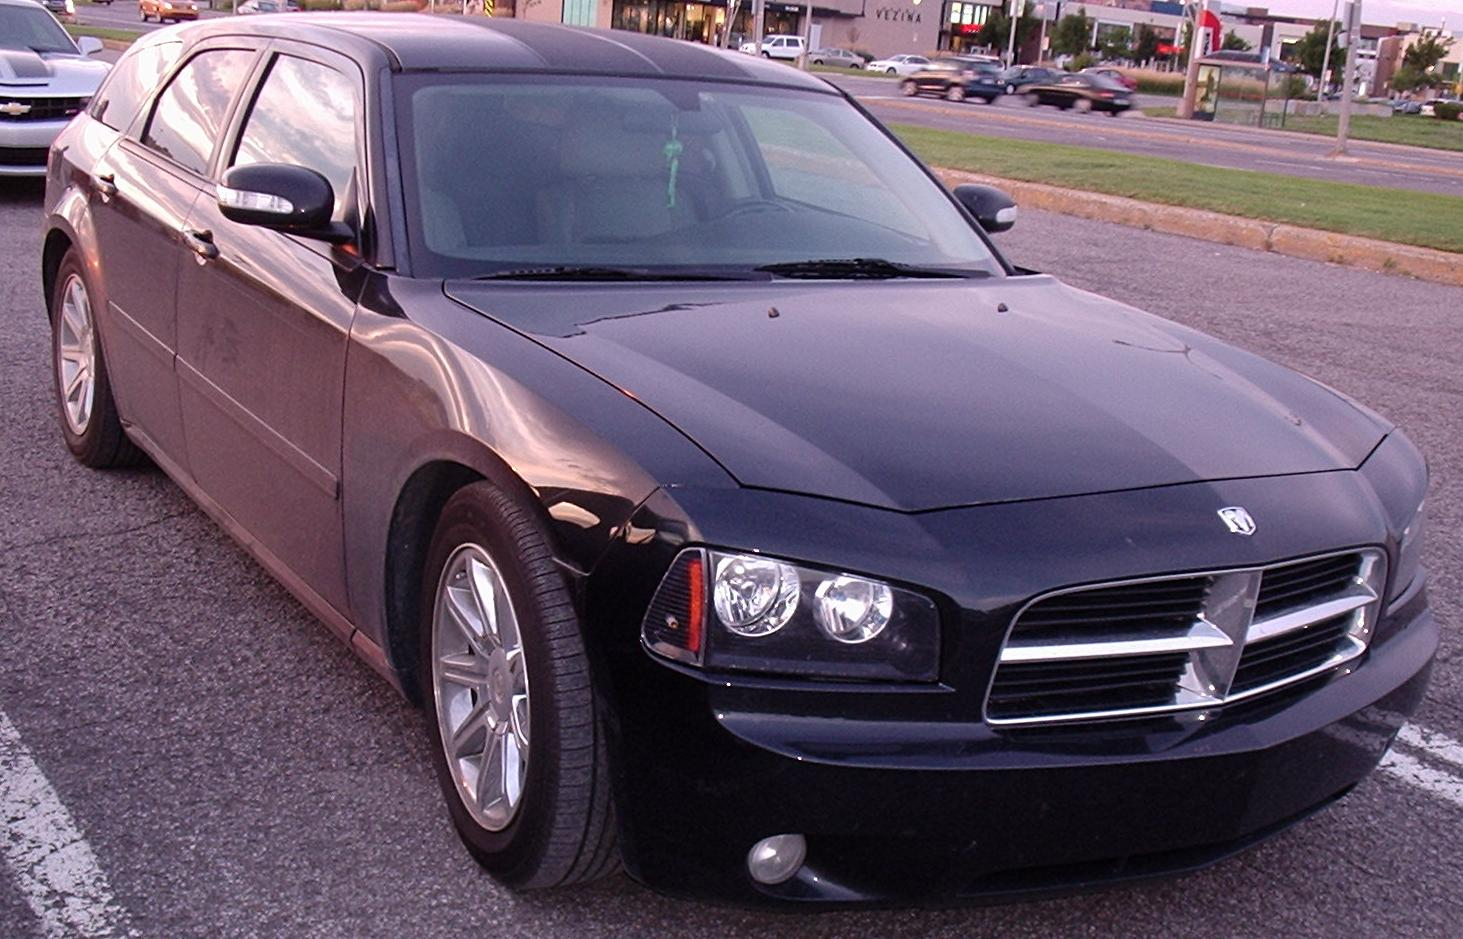 FileDodge Magnum With Charger Grille Les chauds vendredis 10